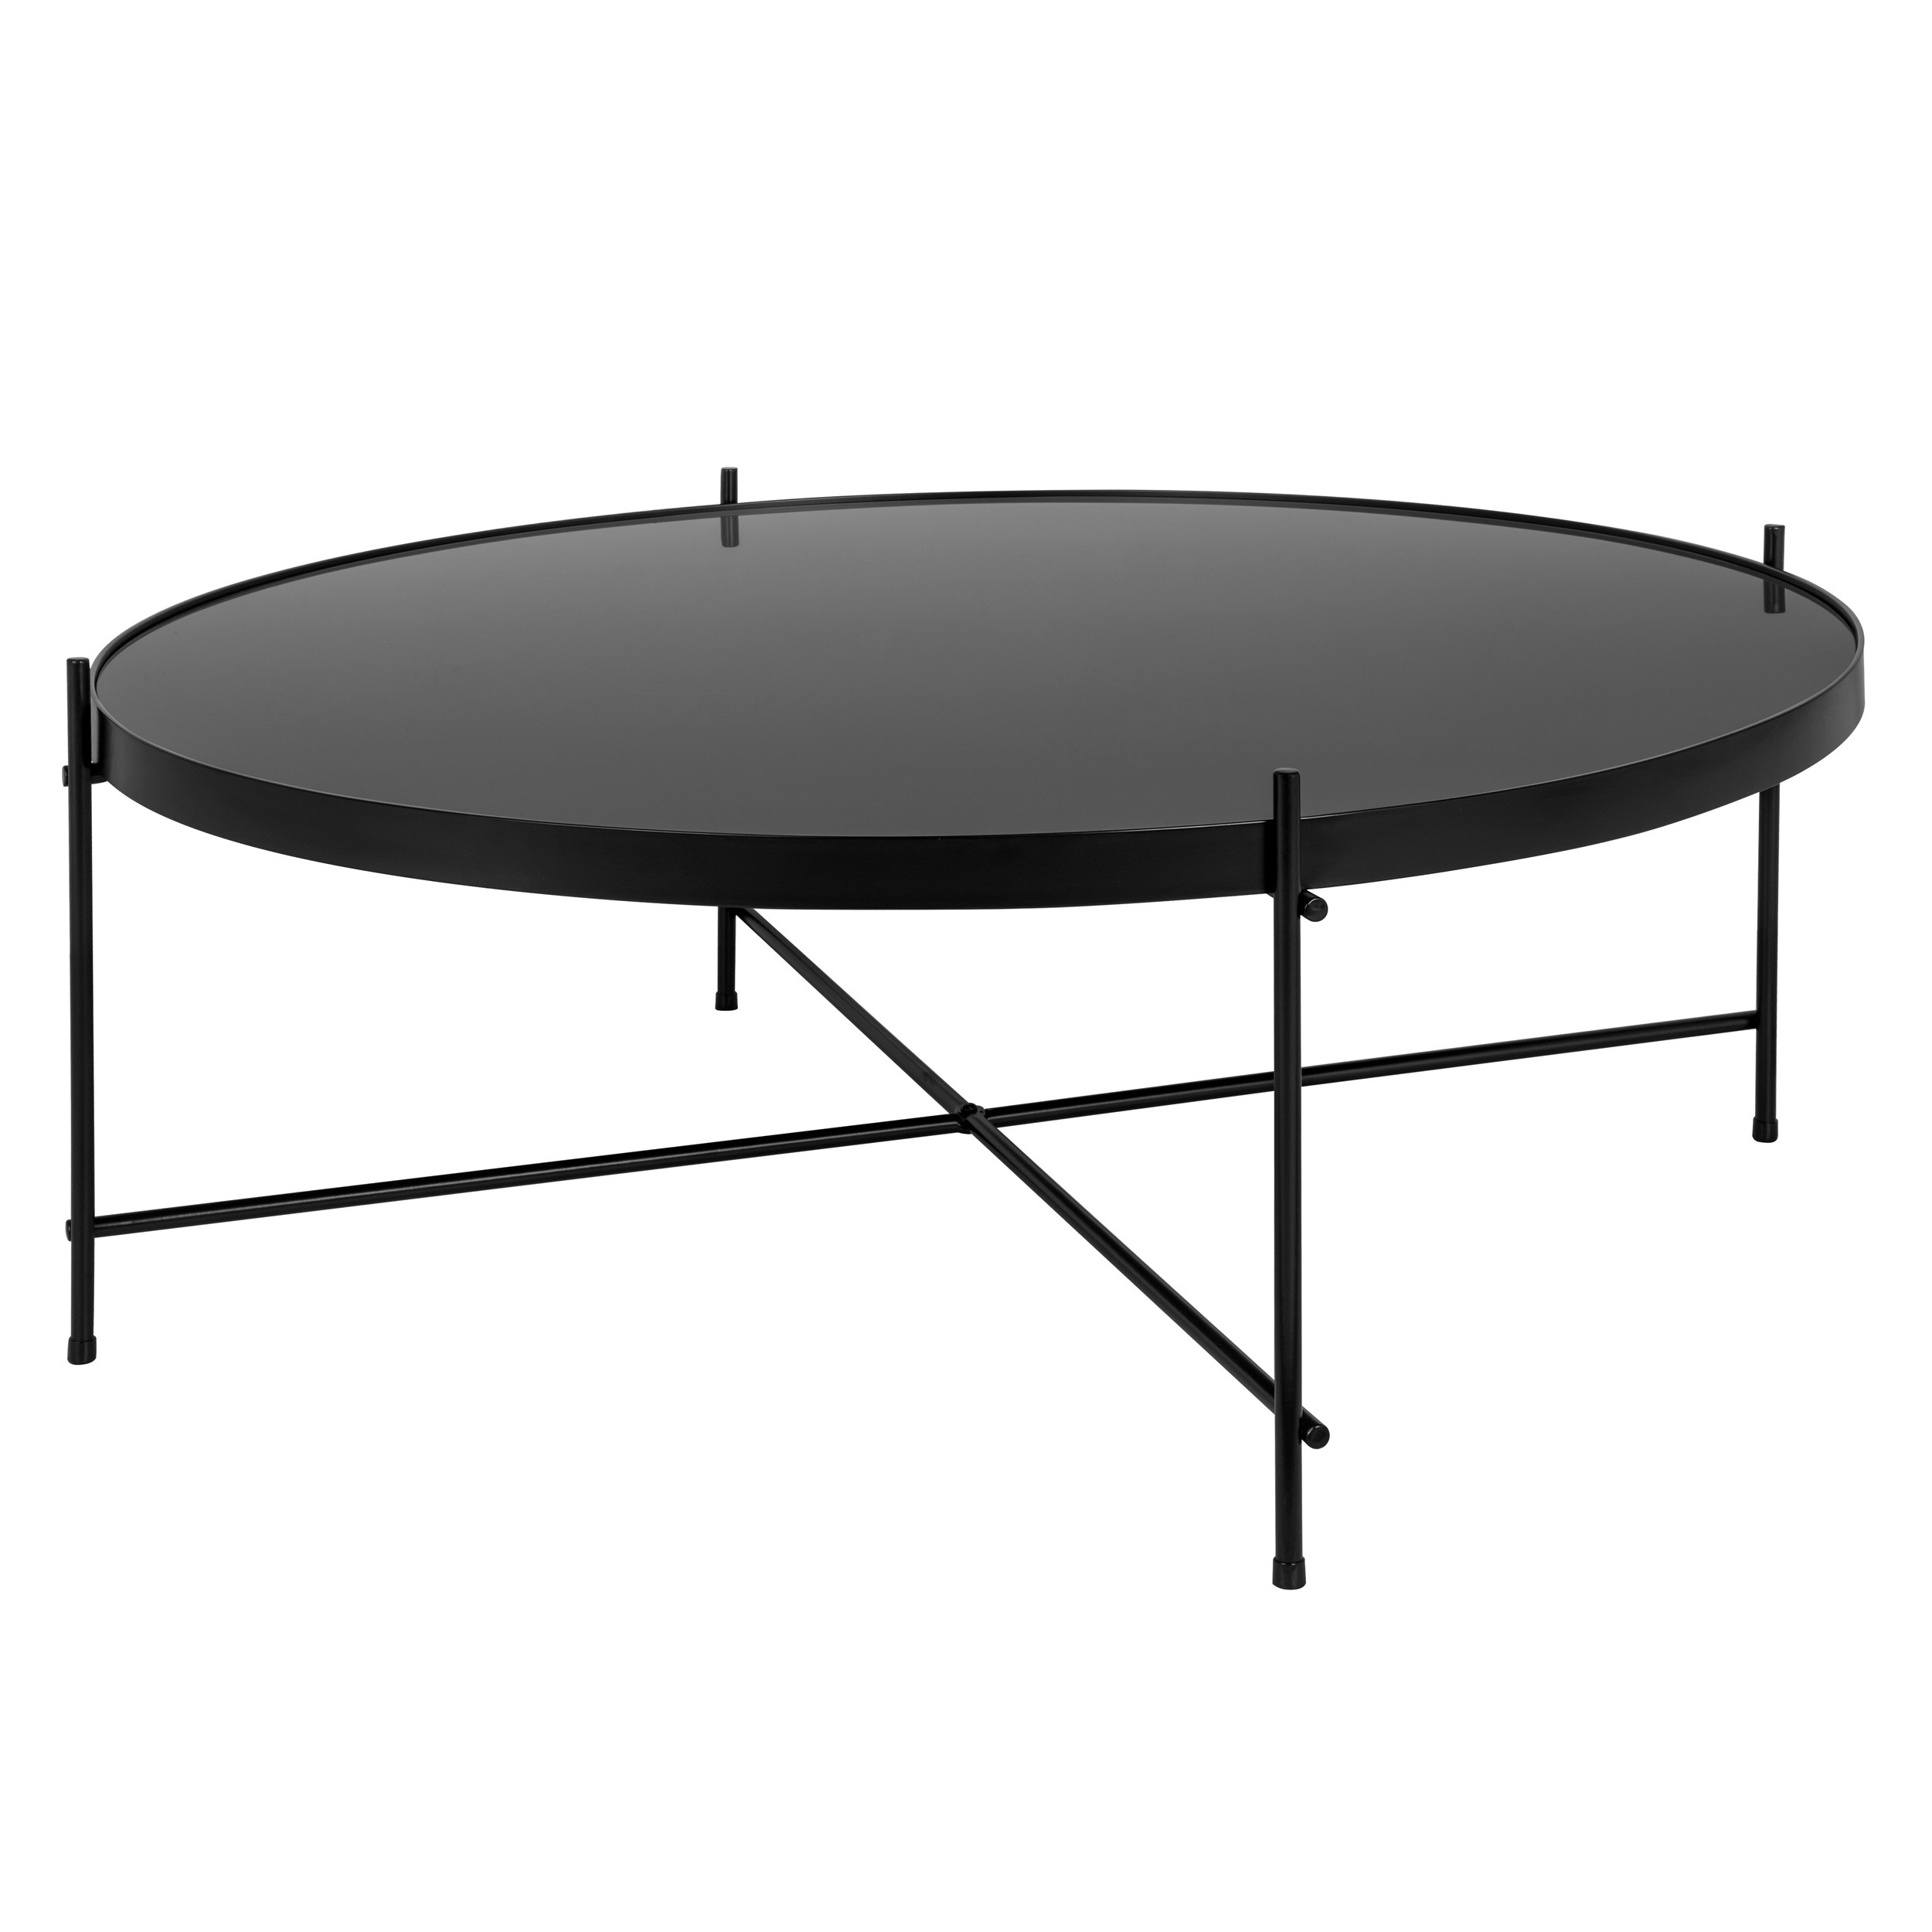 Table Basse Design Noire Decoration Table Basse Noire